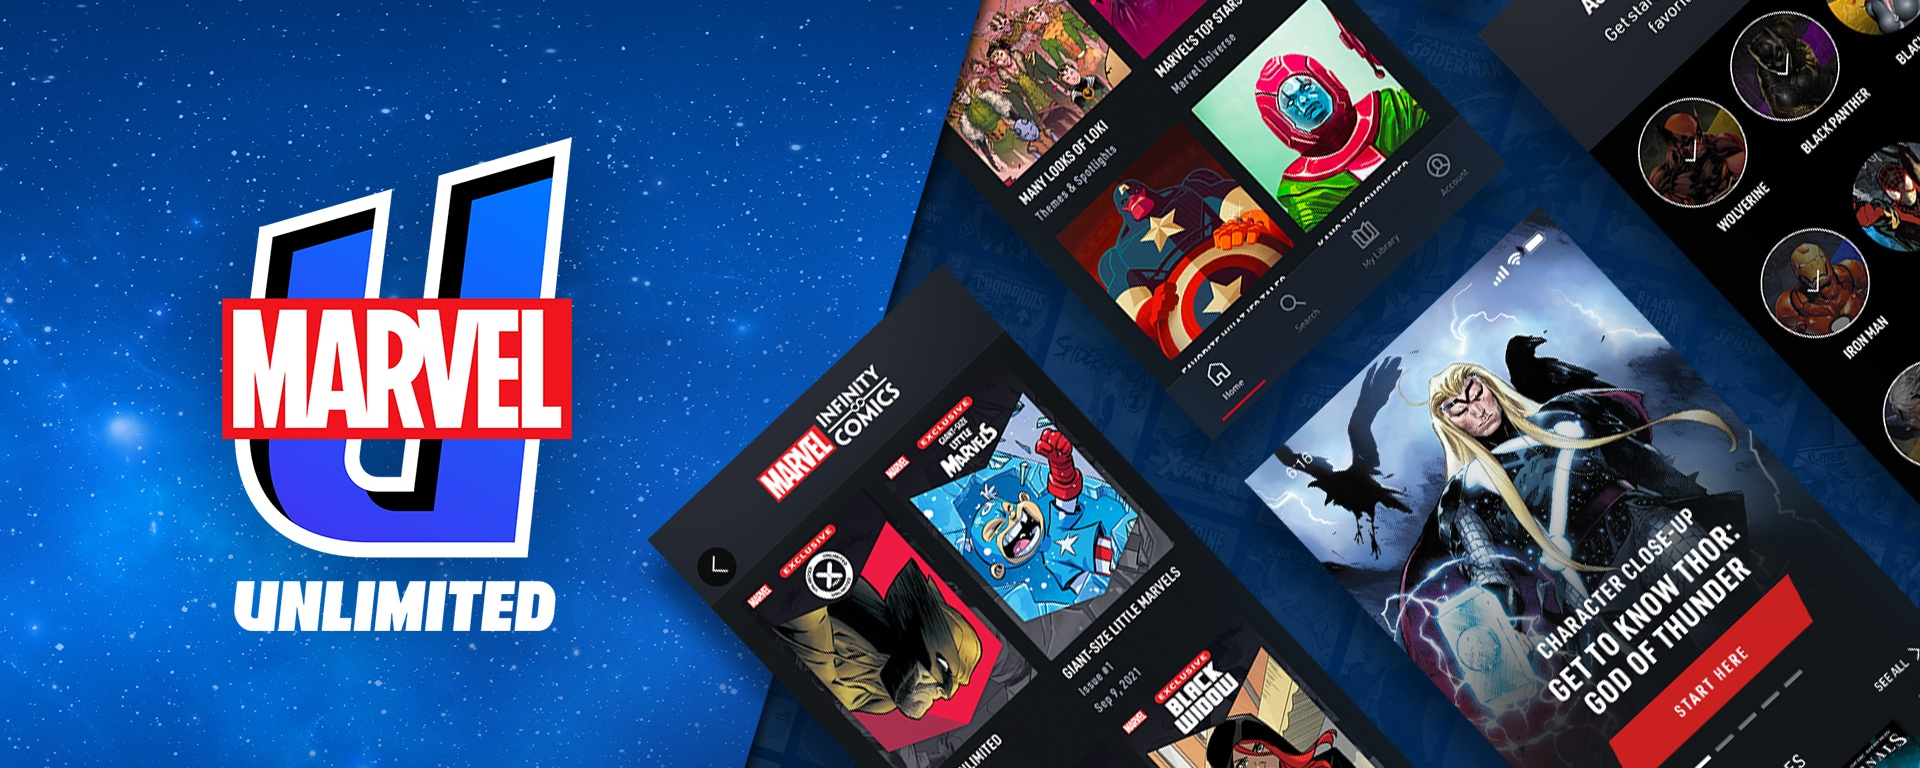 Marvel Unlimited Logo and stills taken from the apps interface